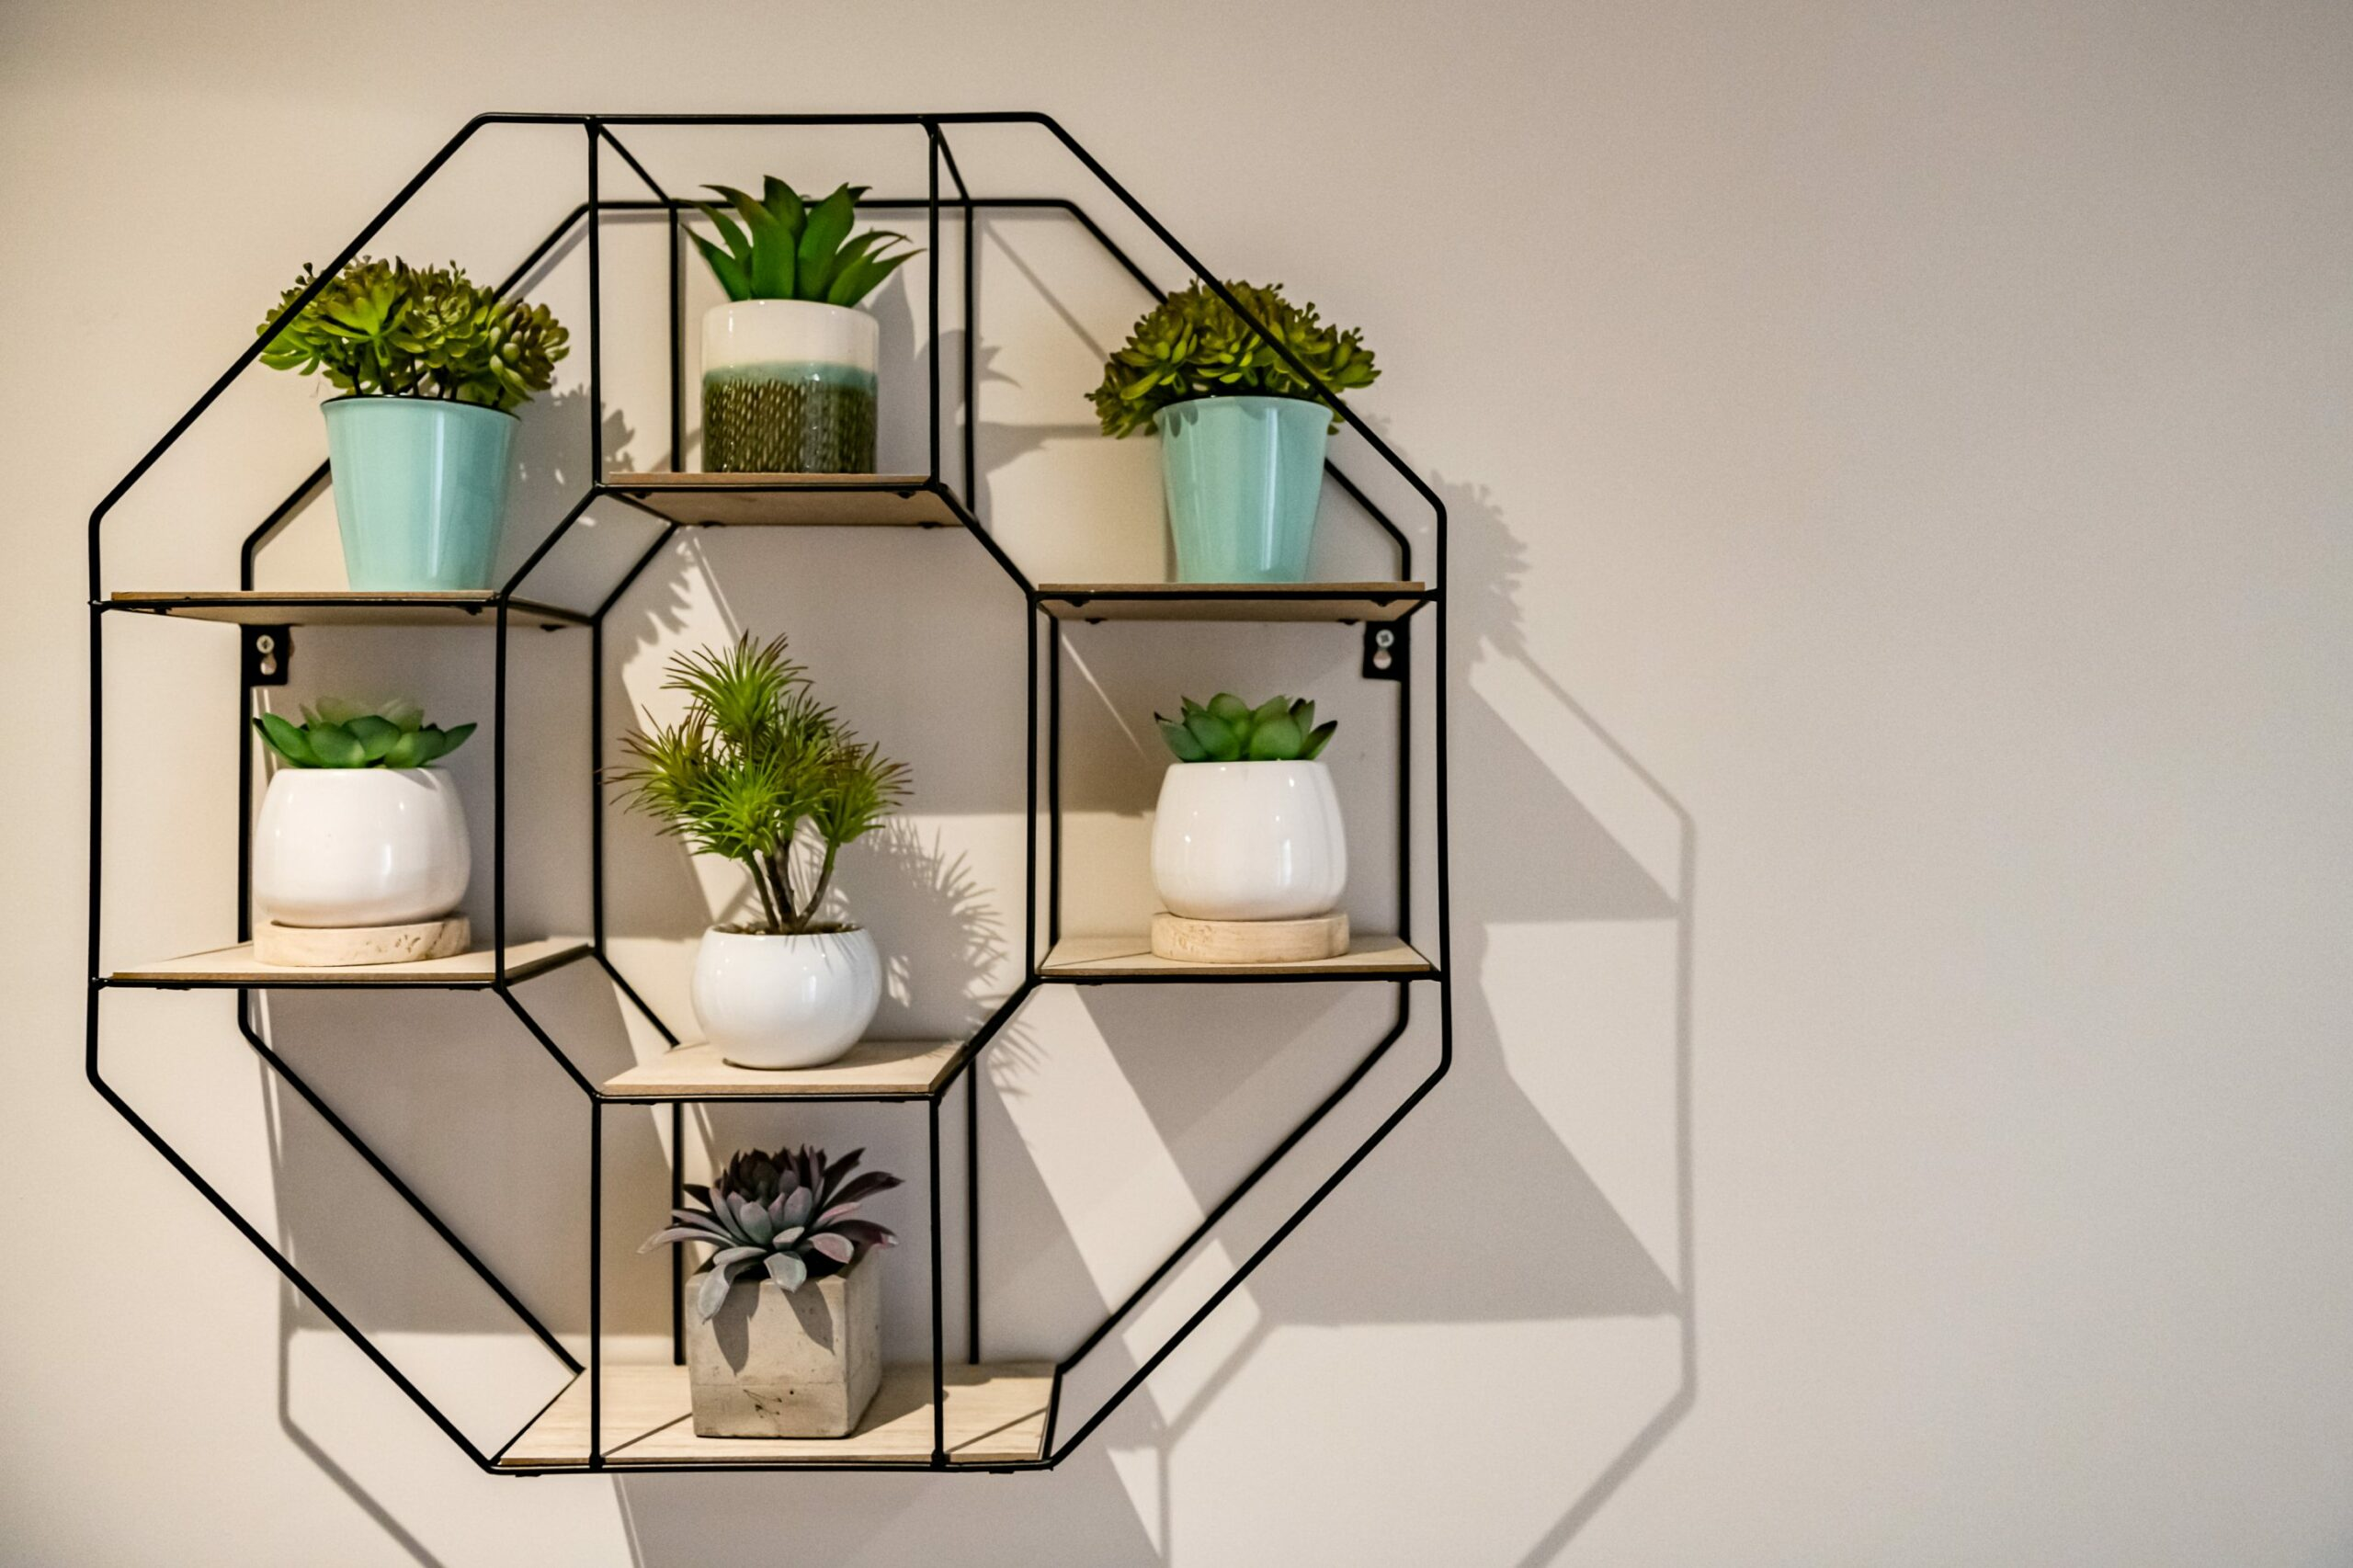 Shelving with lots of plants